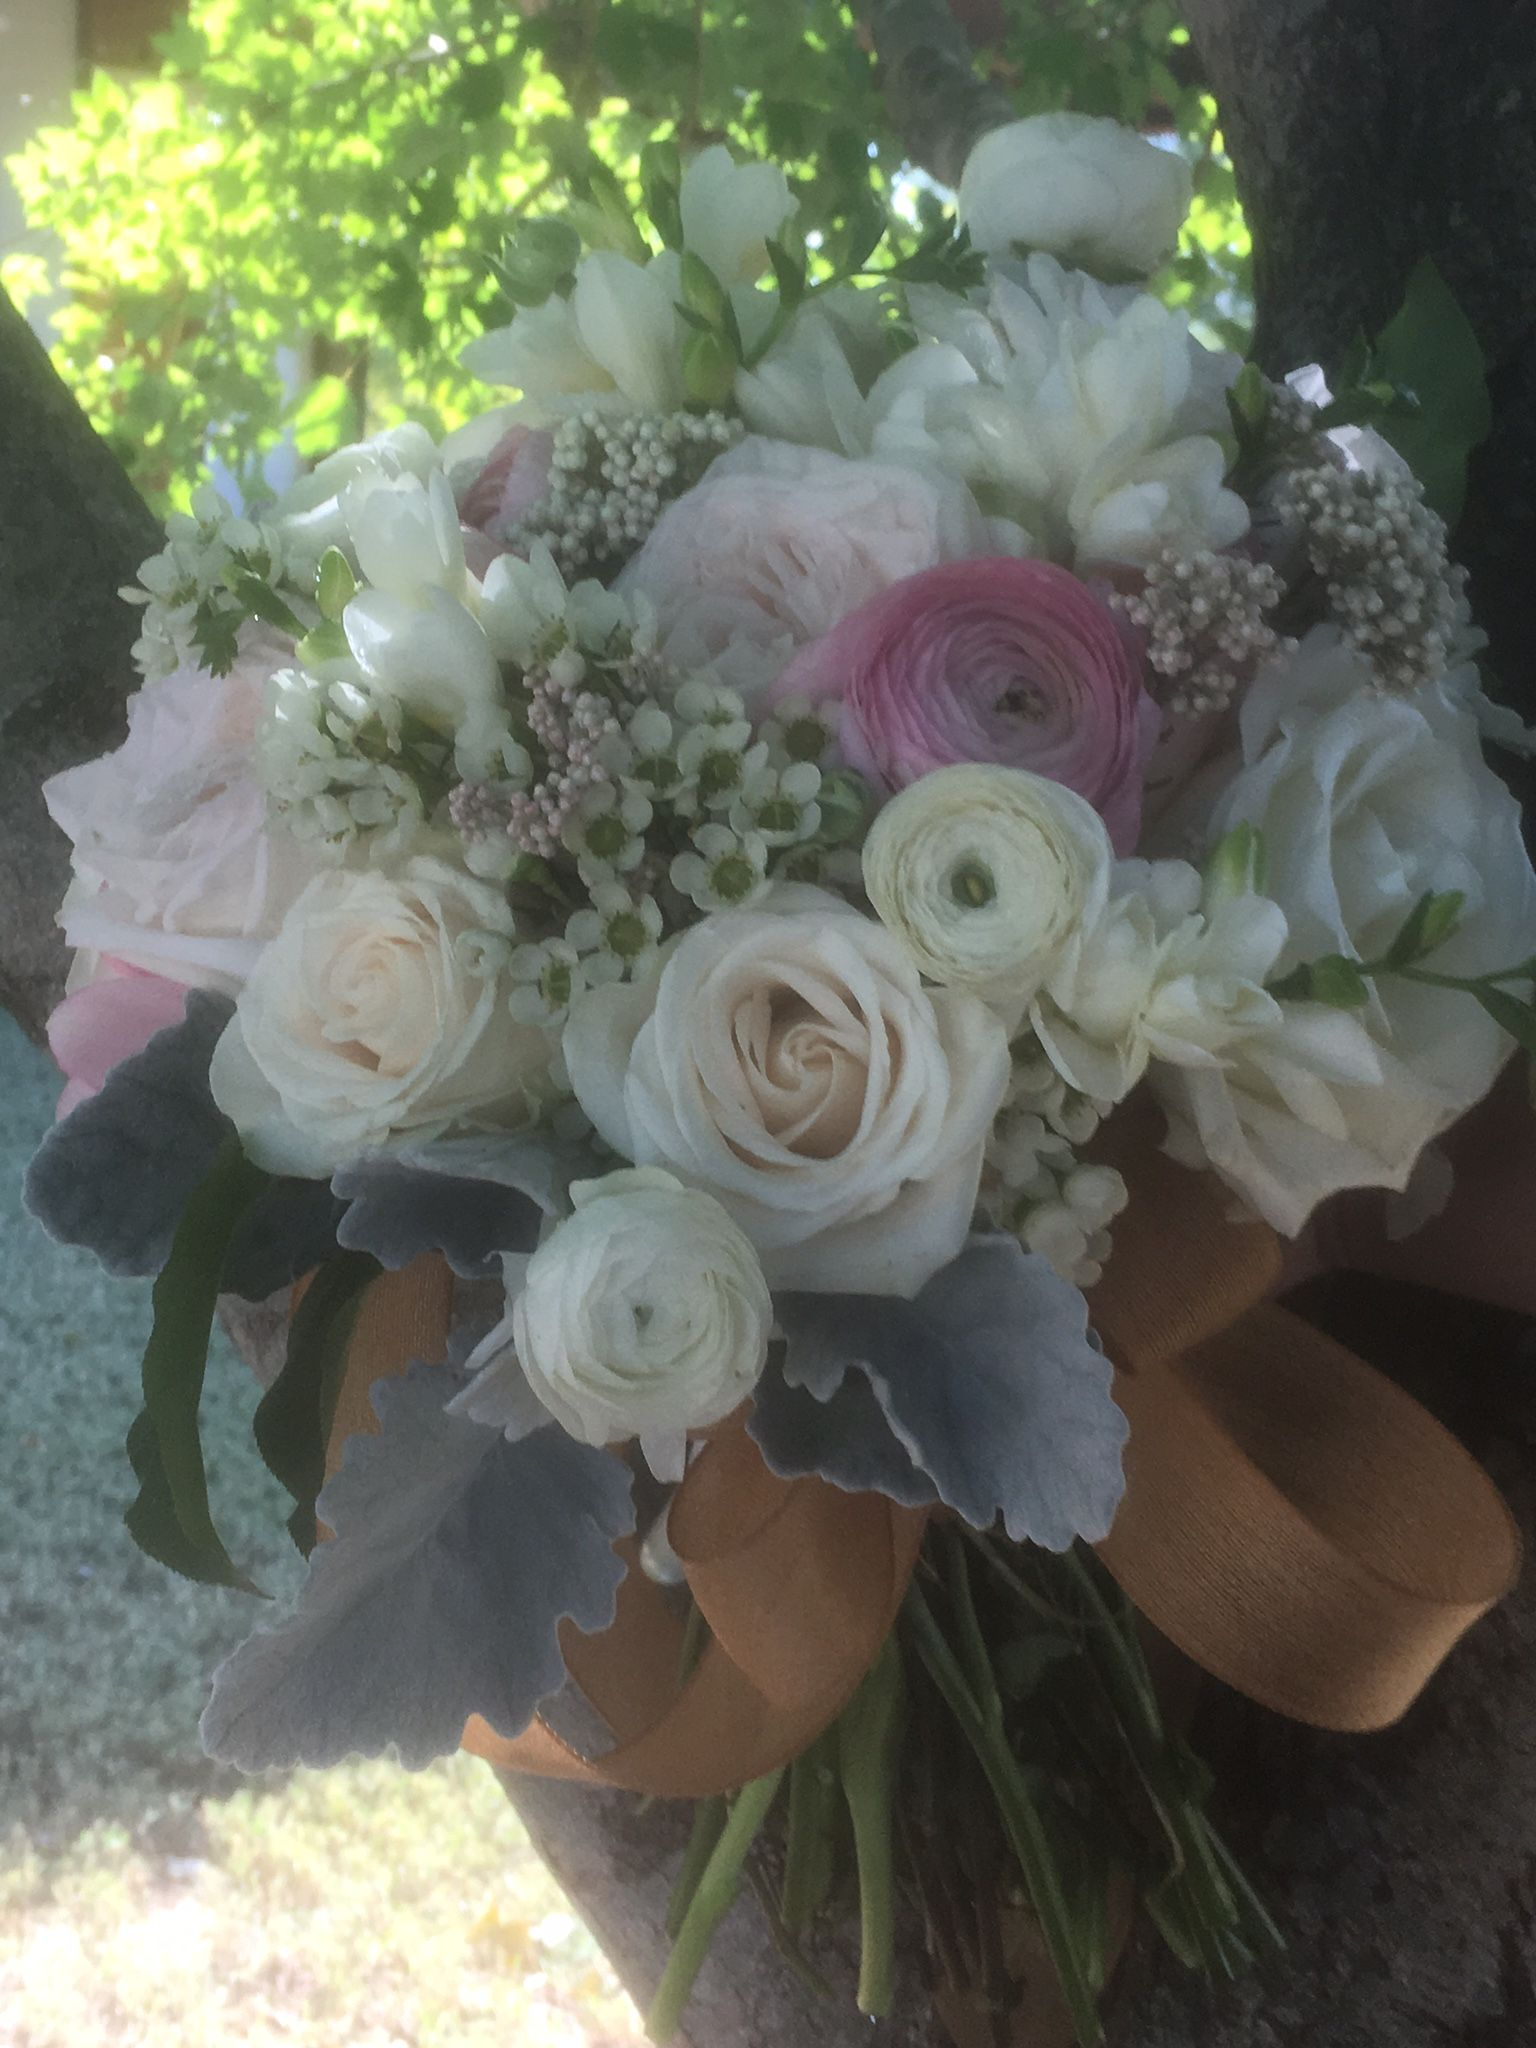 O Hara Garden Roses And Tibet Roses Ranunculus Wax Flower And Dusty Miller Wedding Flowers Bride Bouquets Wax Flowers